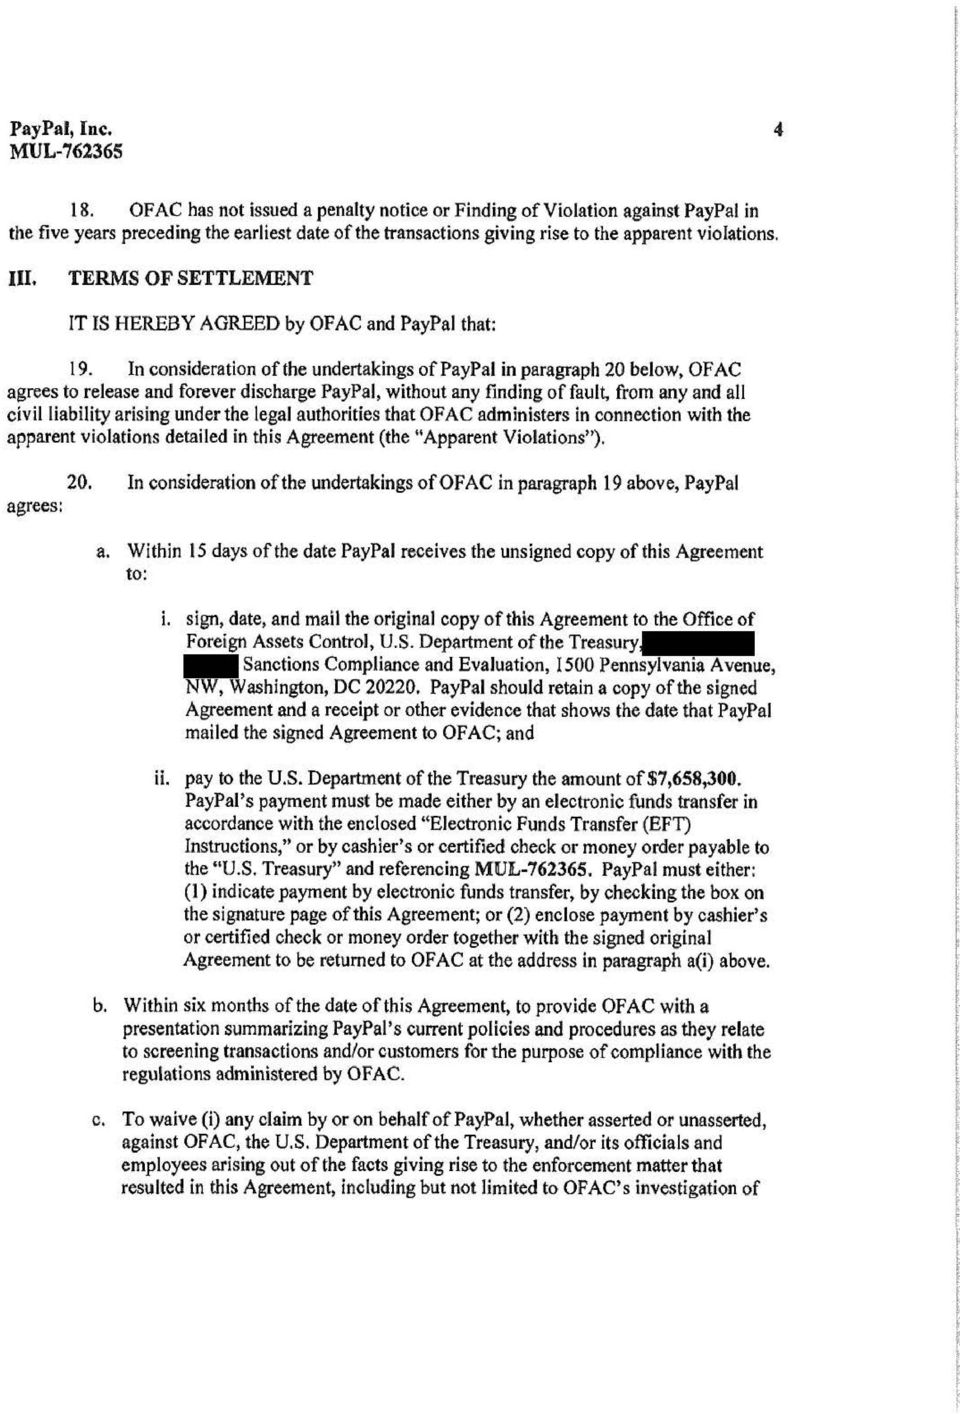 TERMS OF SETTLEMENT IT IS HEREBY AGREED by OFAC and PayPal that: 19.